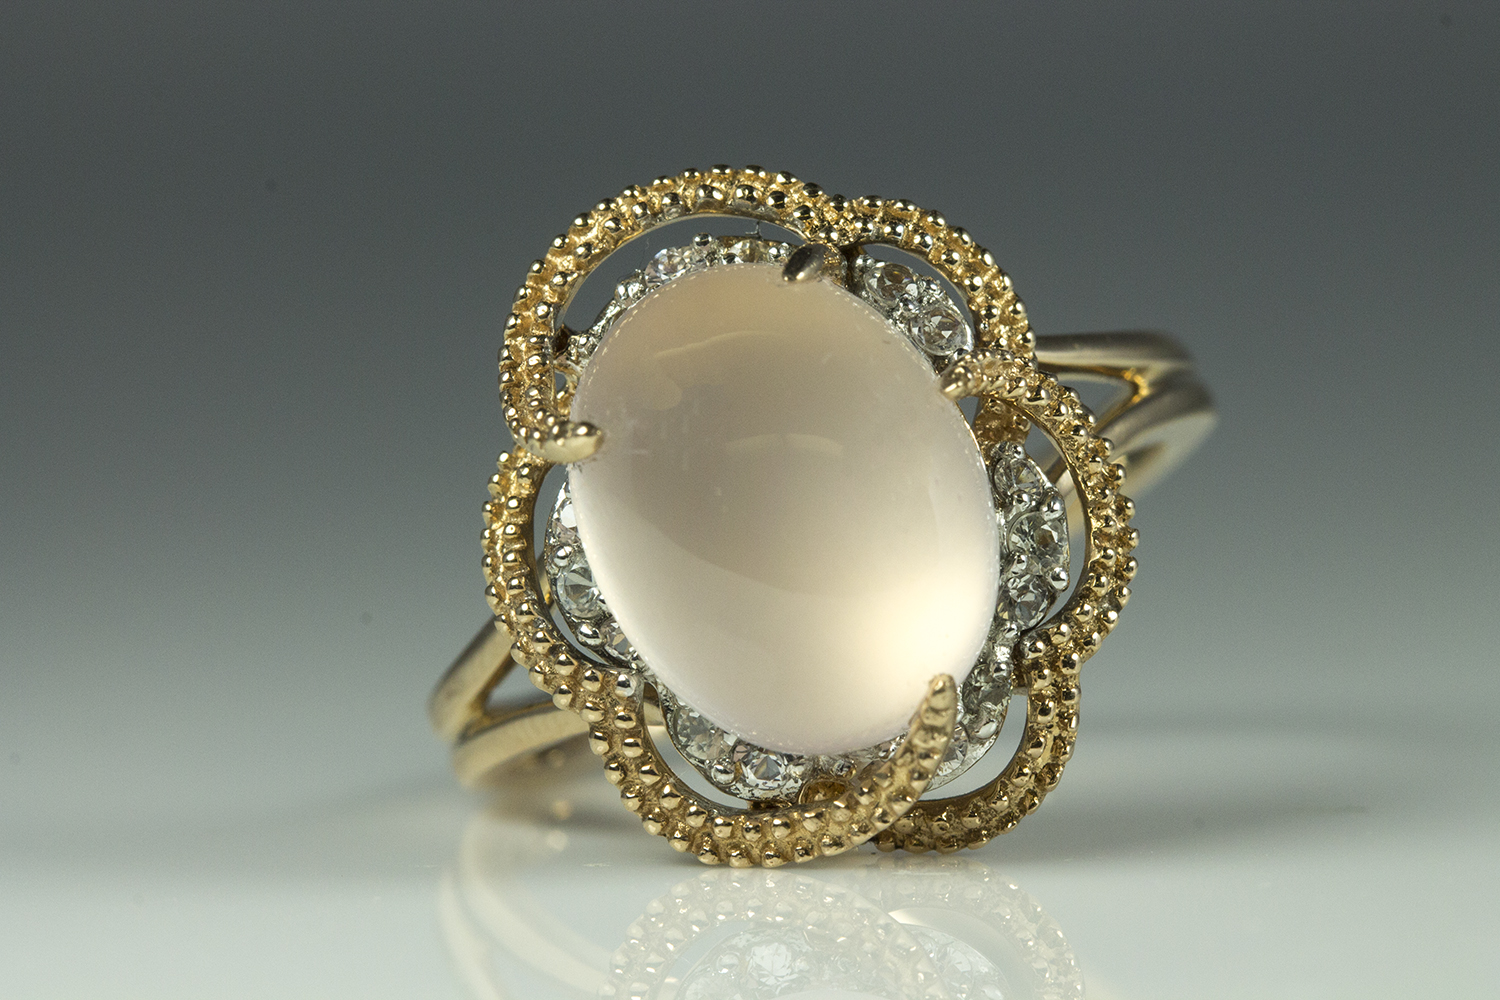 14k Rose Gold Oval Pale Pink Adularescent Quartz Swirl in Floral Style  Beaded Perimeter w/ White Melee Sapphires – E342